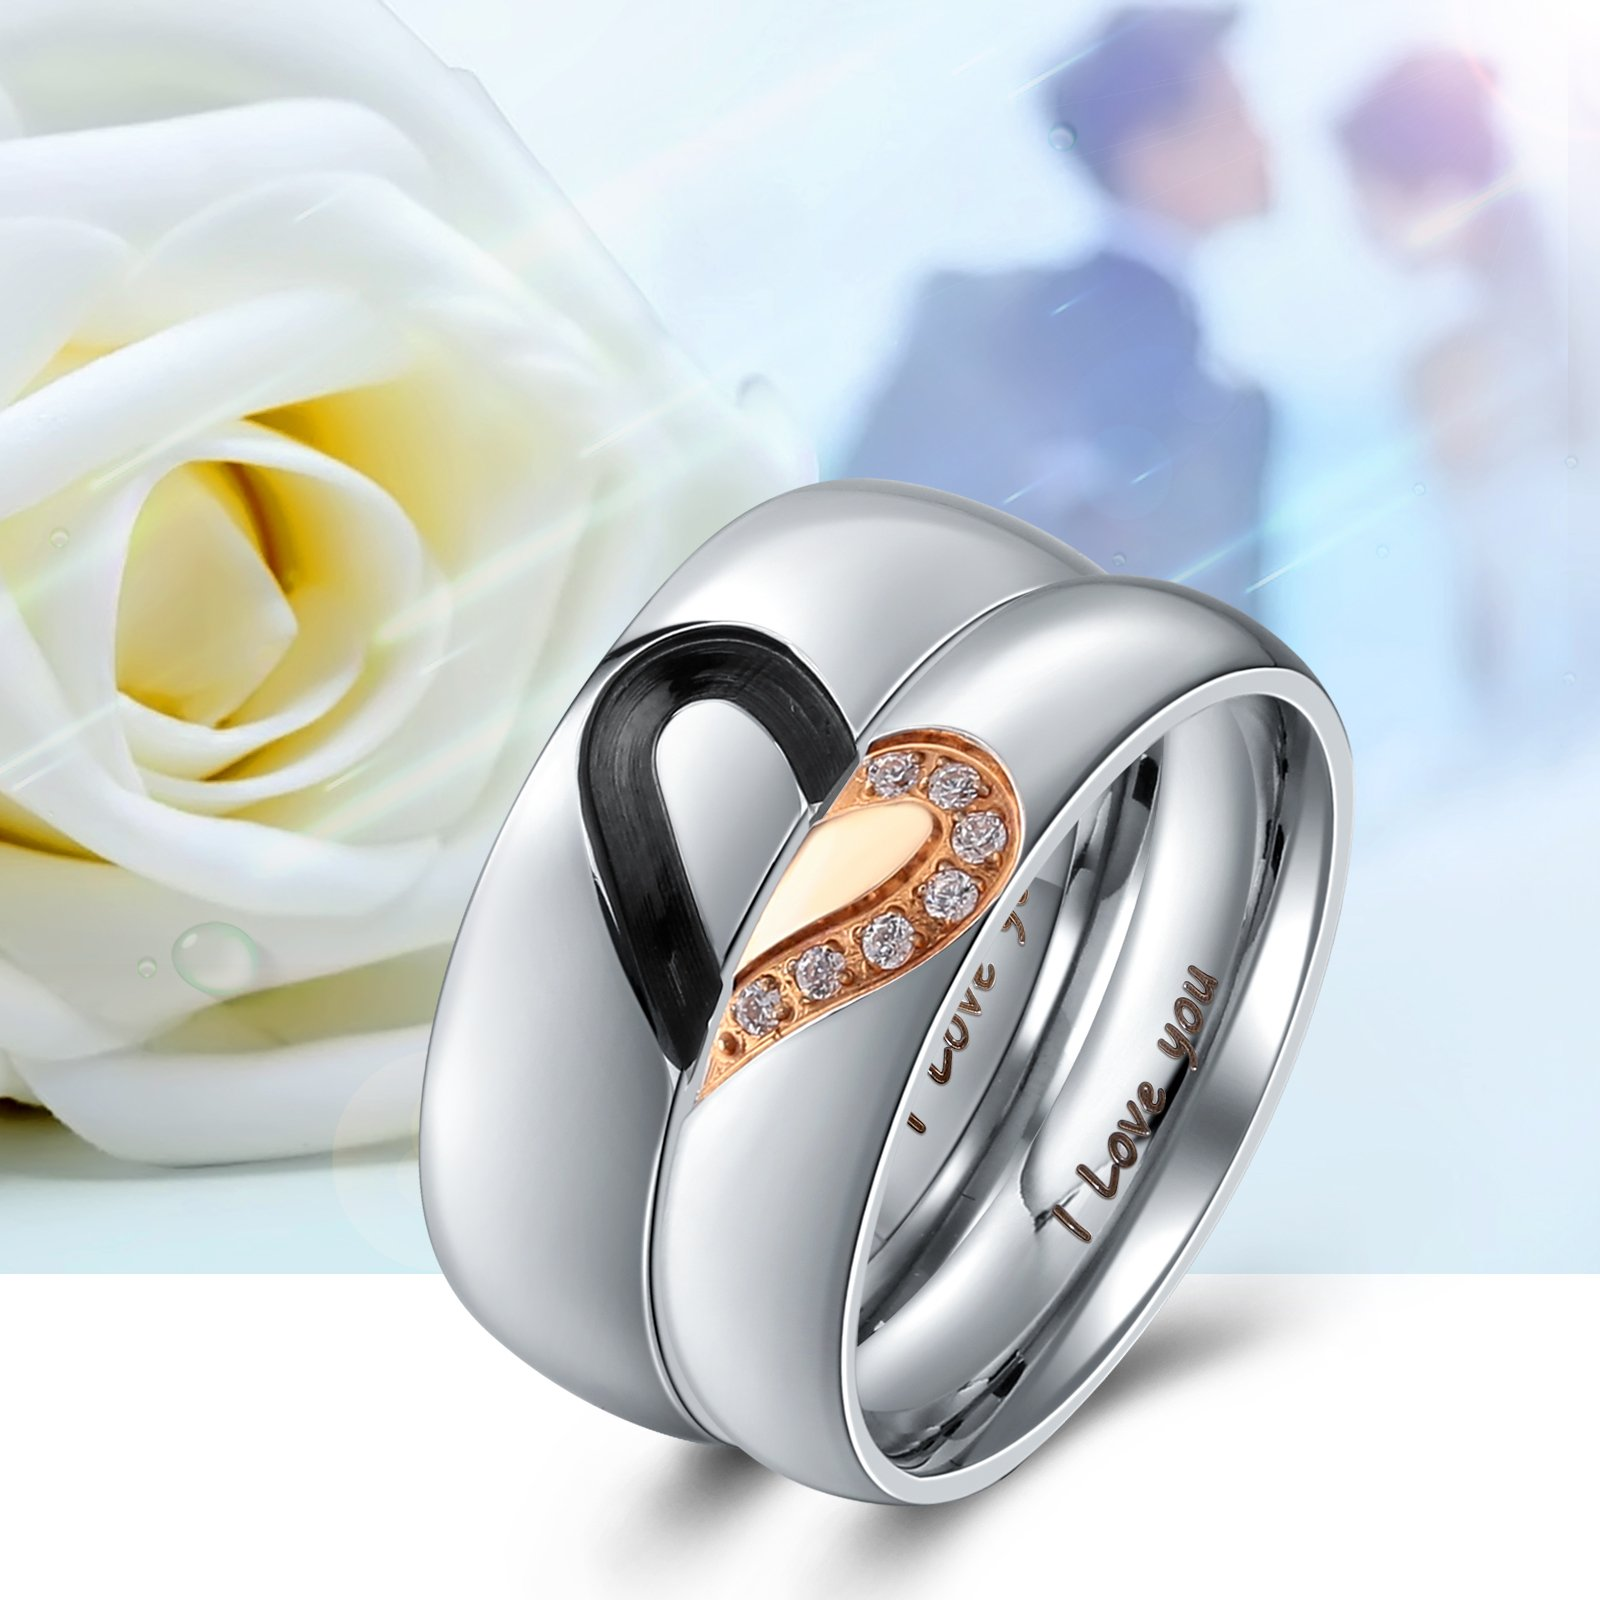 Aienid Rings Men and Women Couple Rings Heart I Love You Stainless Steel Wedding Bands for Womens Size 7 by Aienid (Image #4)